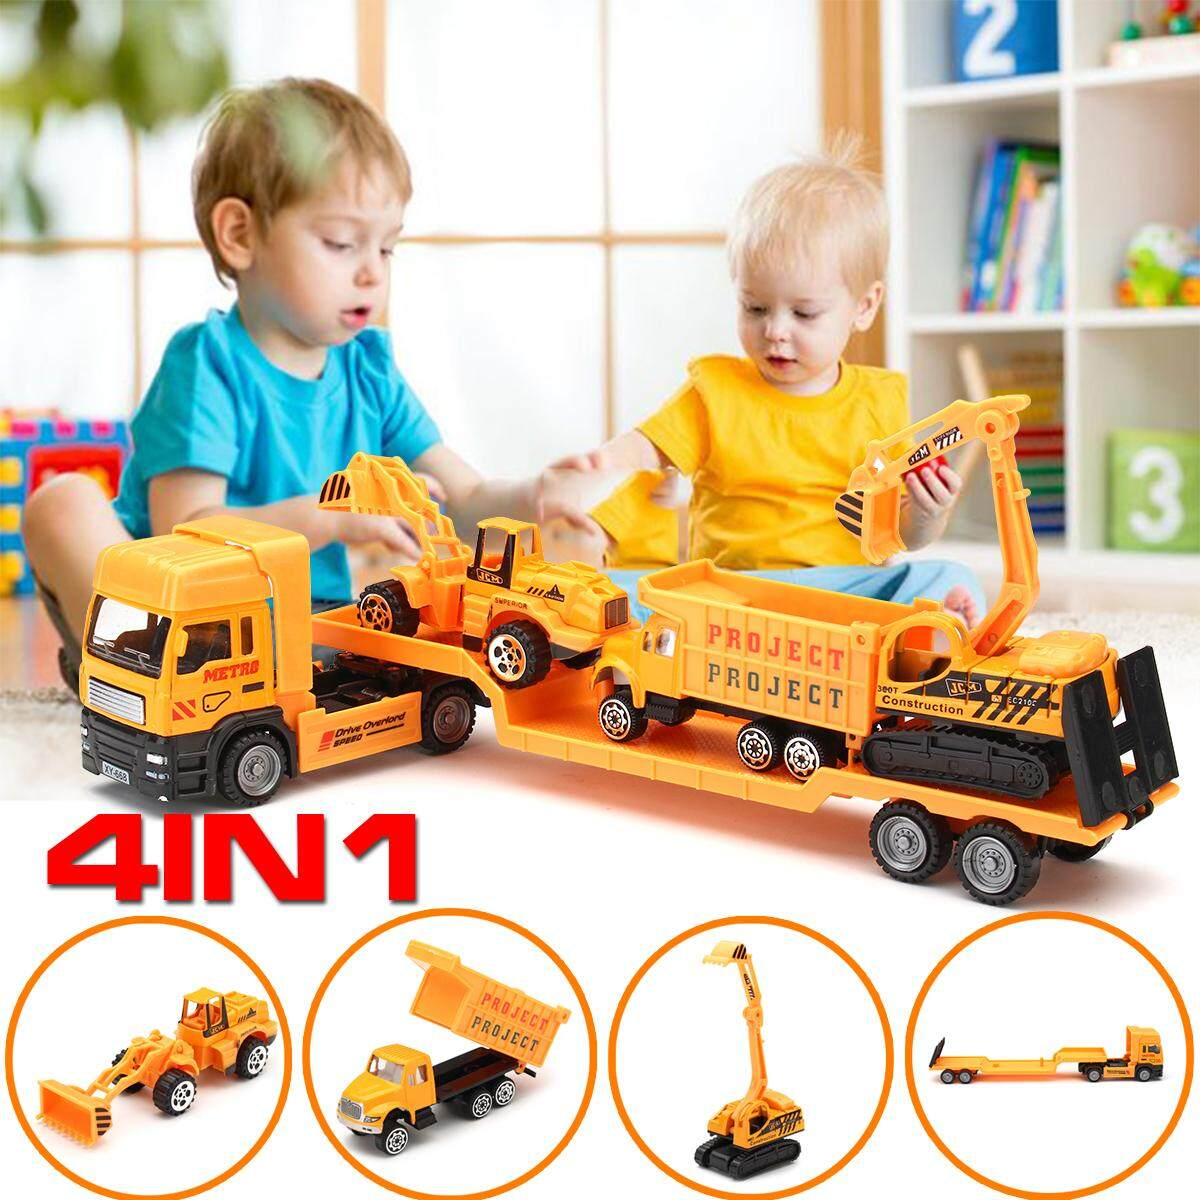 Kids Toy Recovery Vehicle Tow Truck Lorry Diecast Construction By Glimmer.